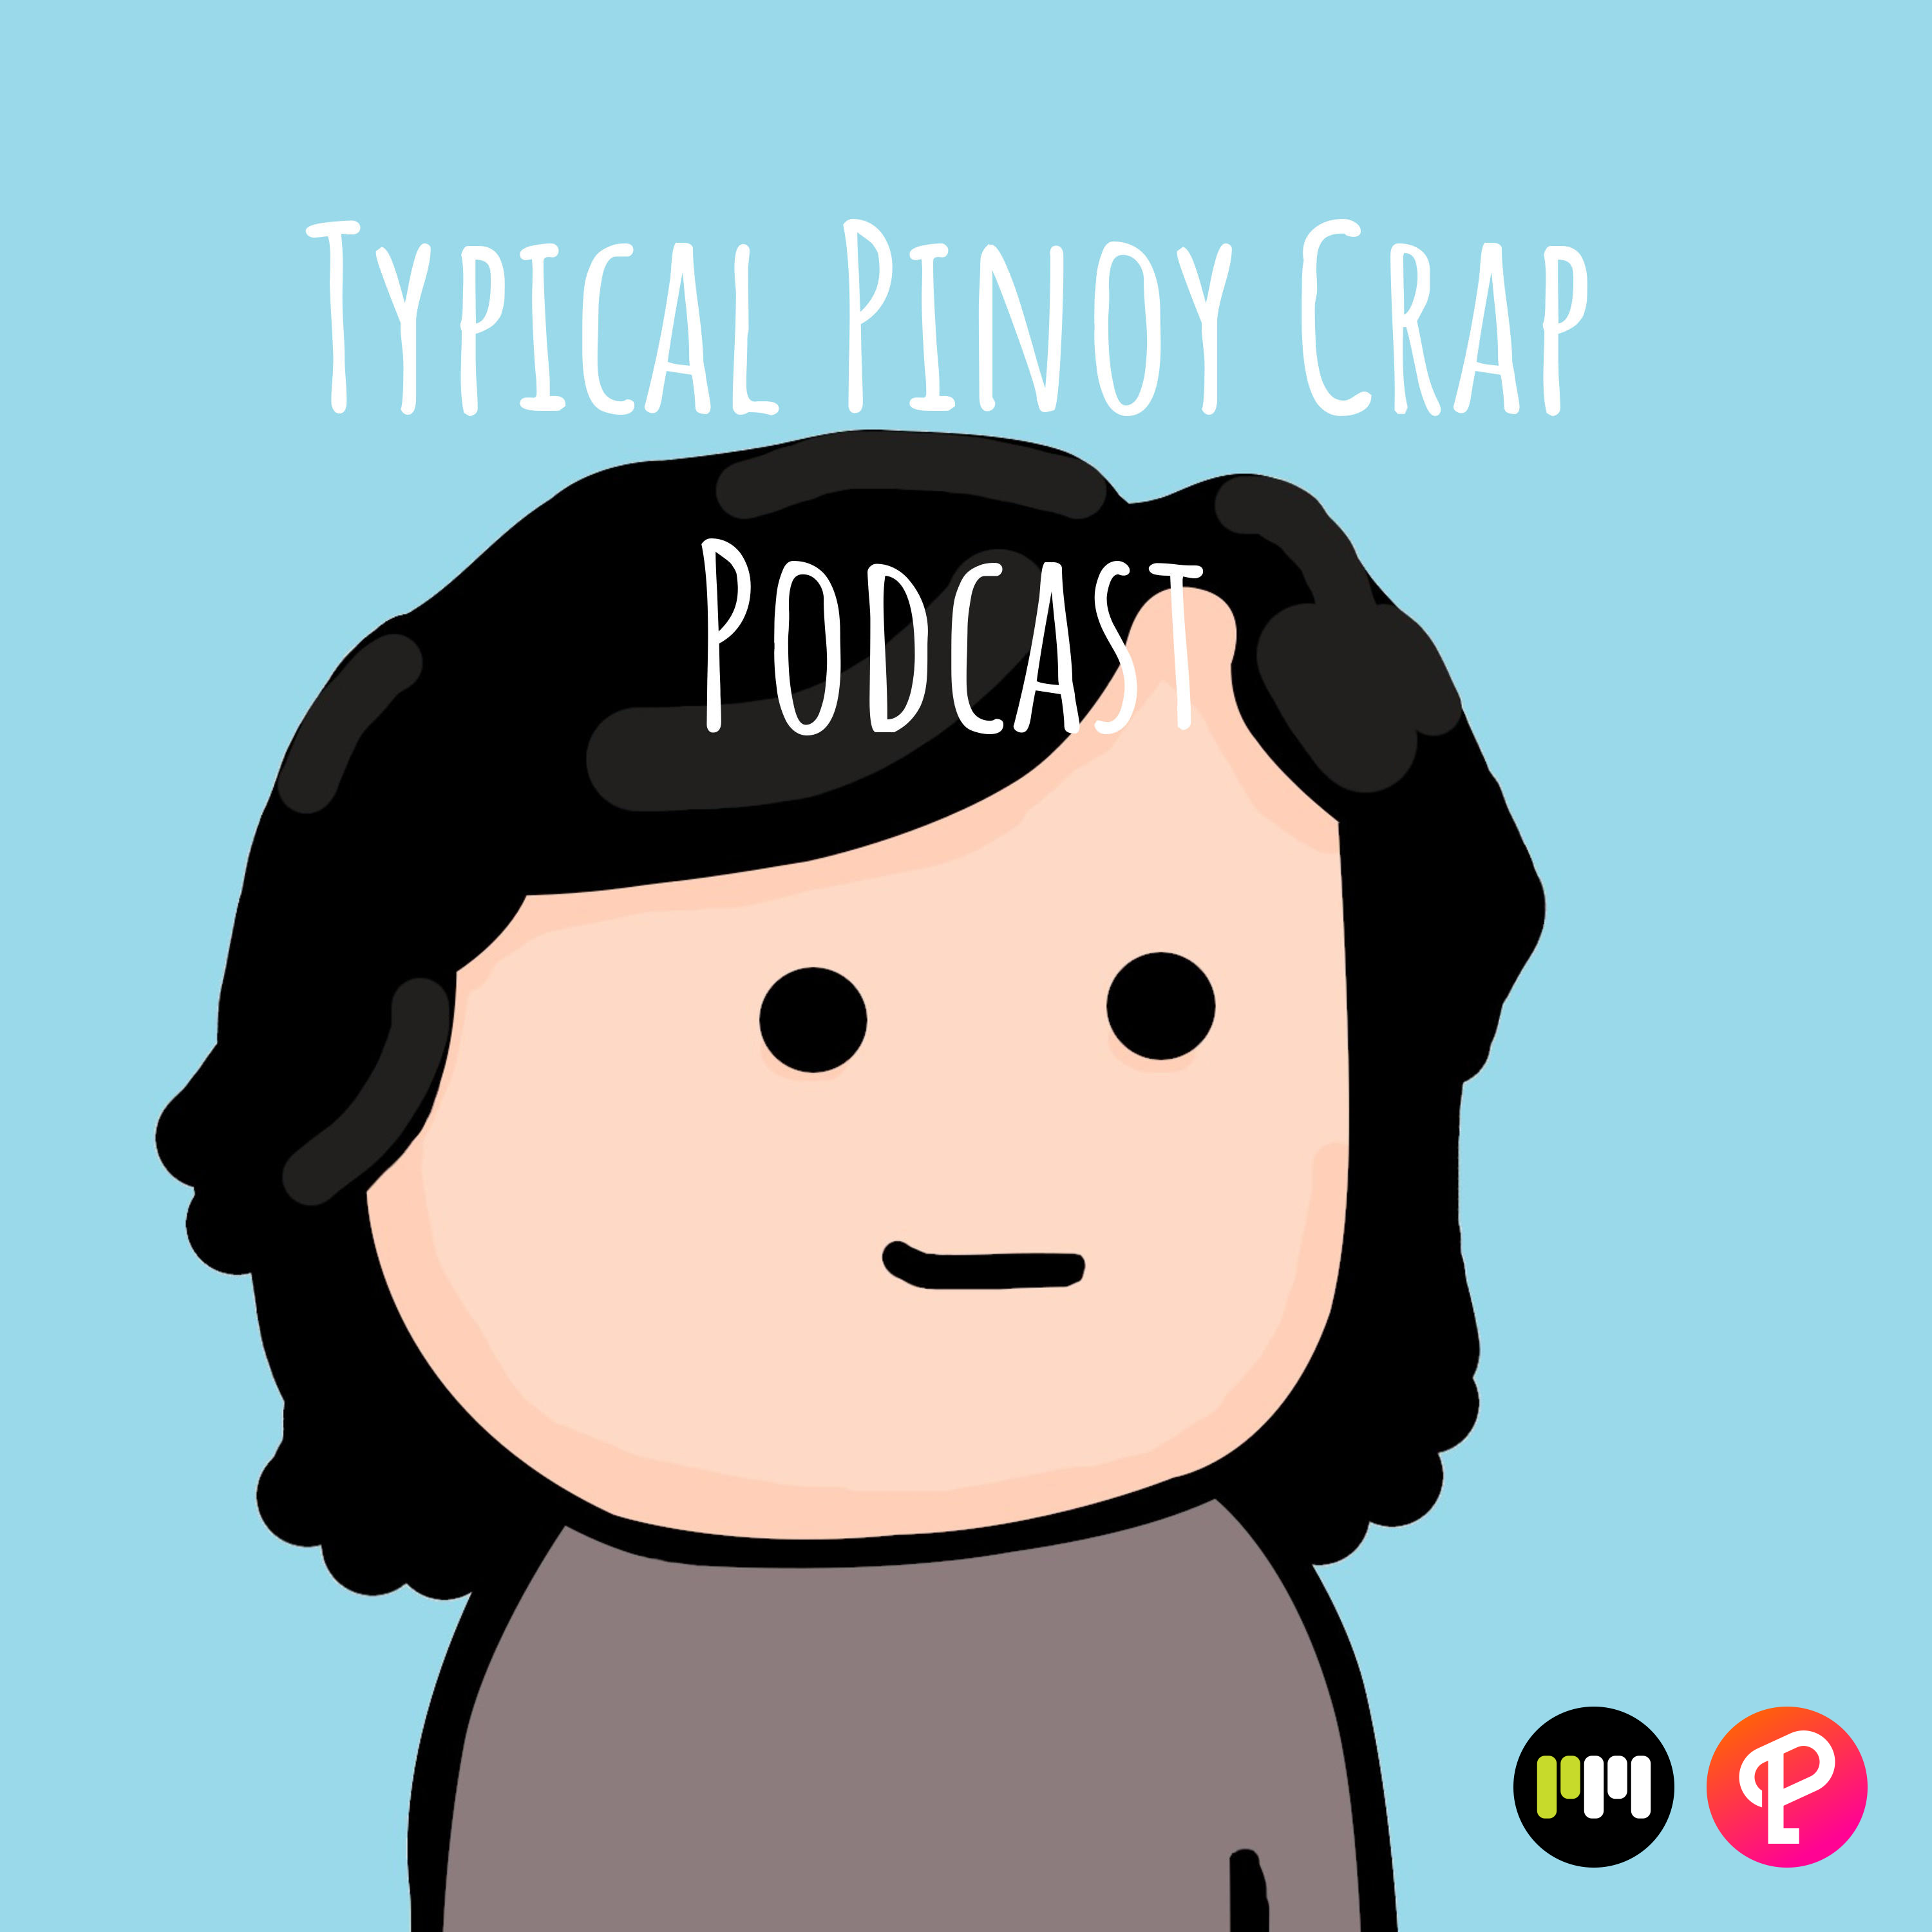 Typical Pinoy Crap Podcast